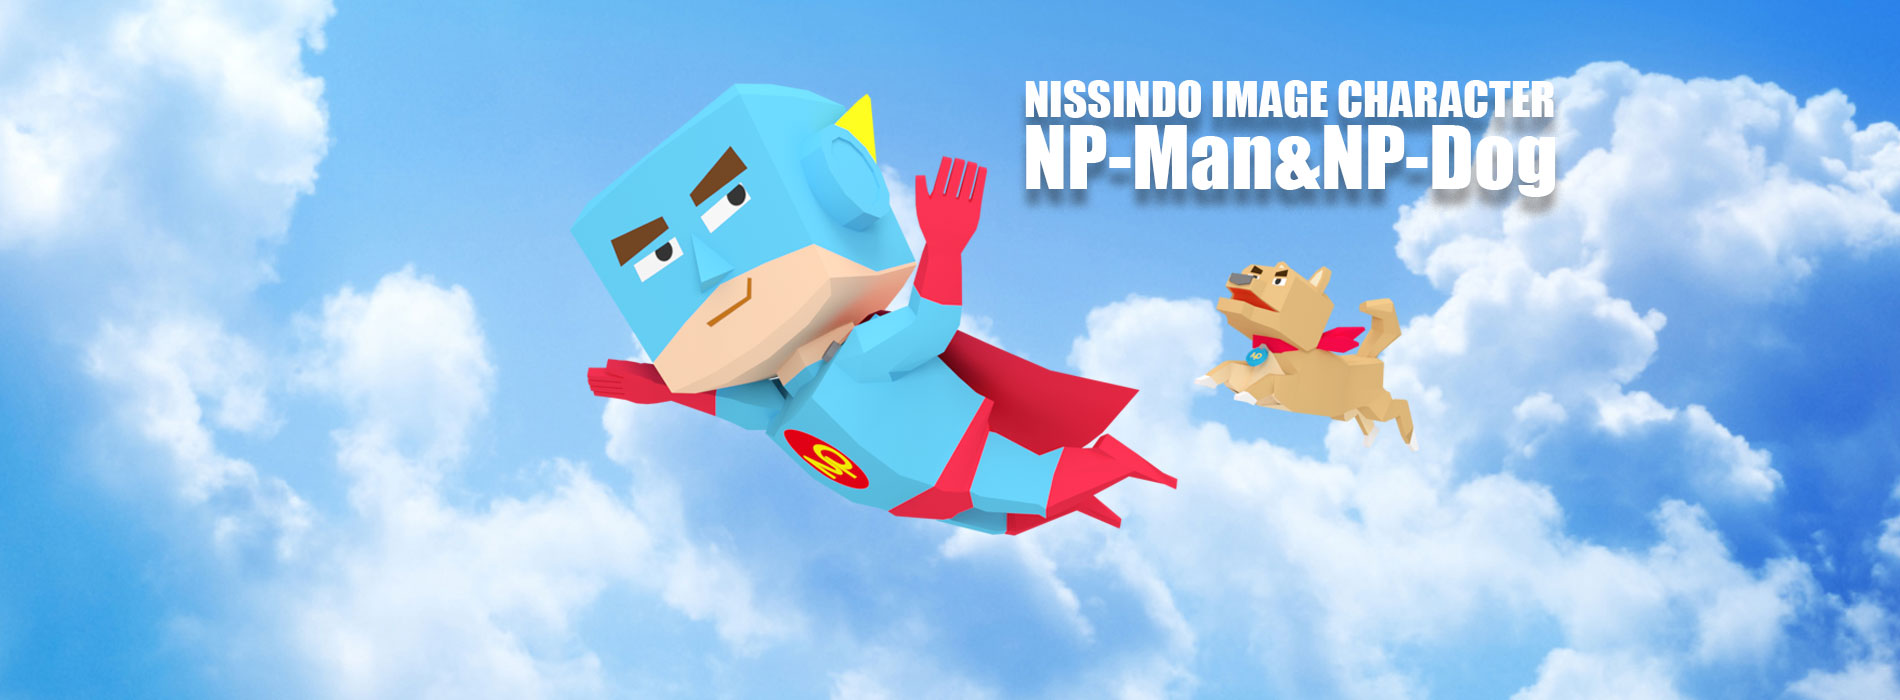 NP-Man & NP-Dog Official page